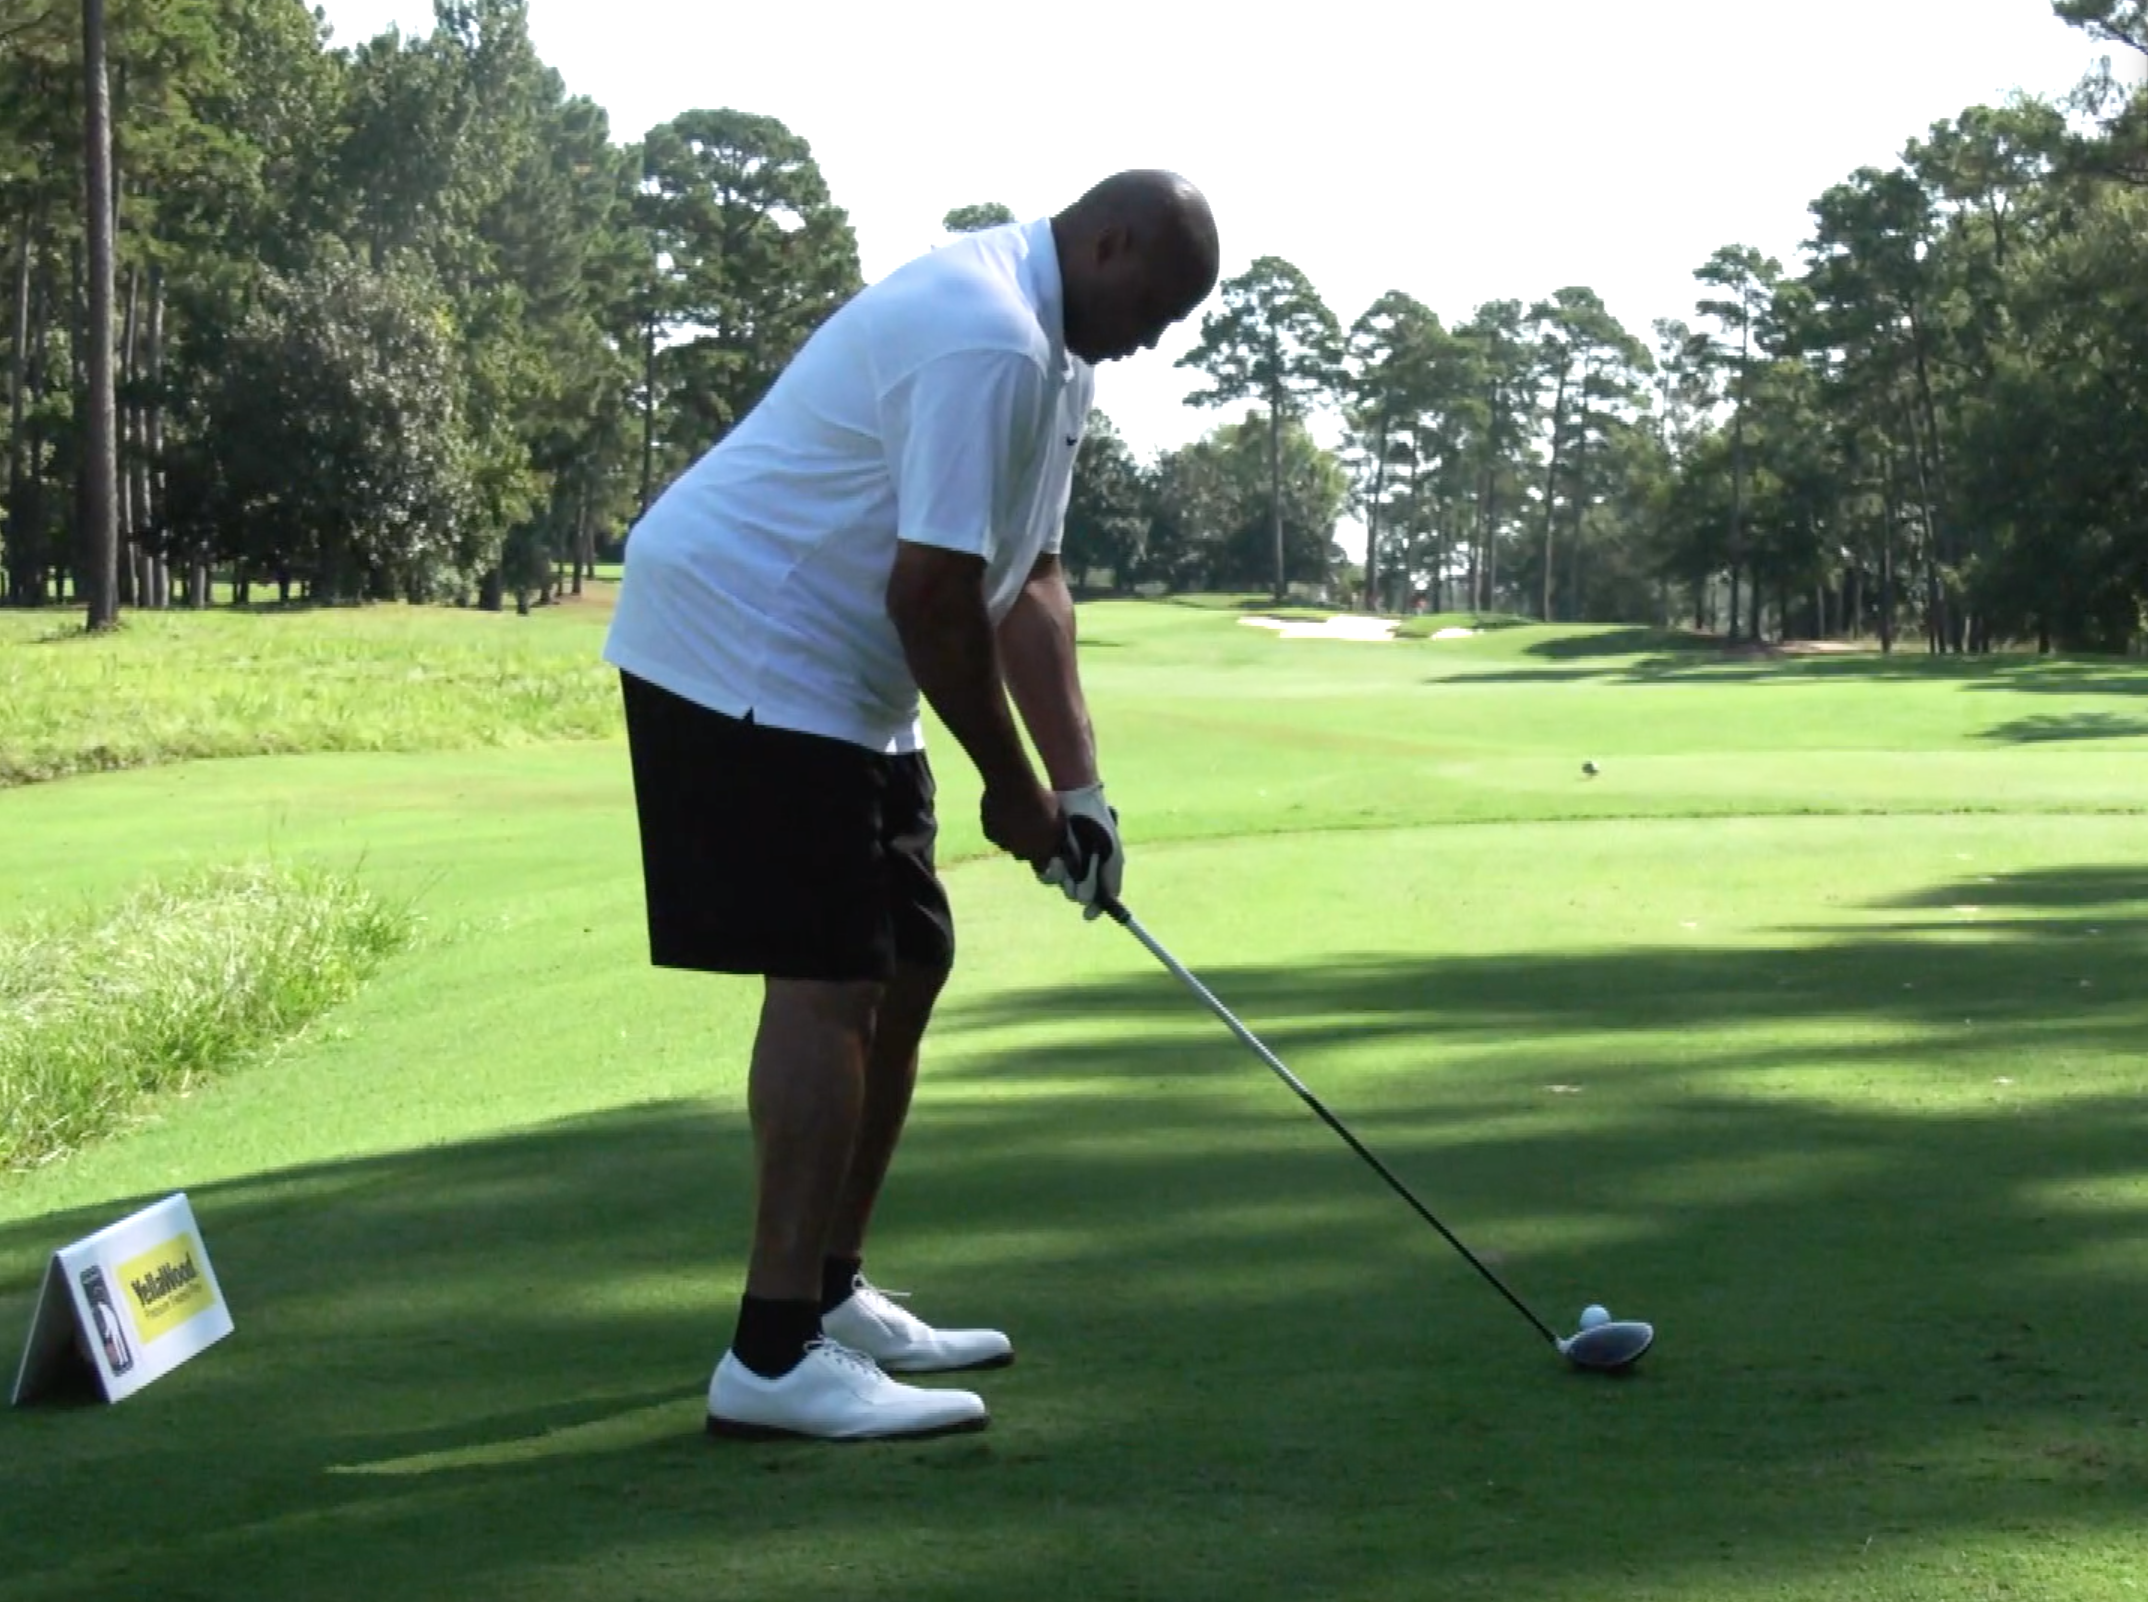 Charles Barkley Golf Swing Images | Decoration Cloth